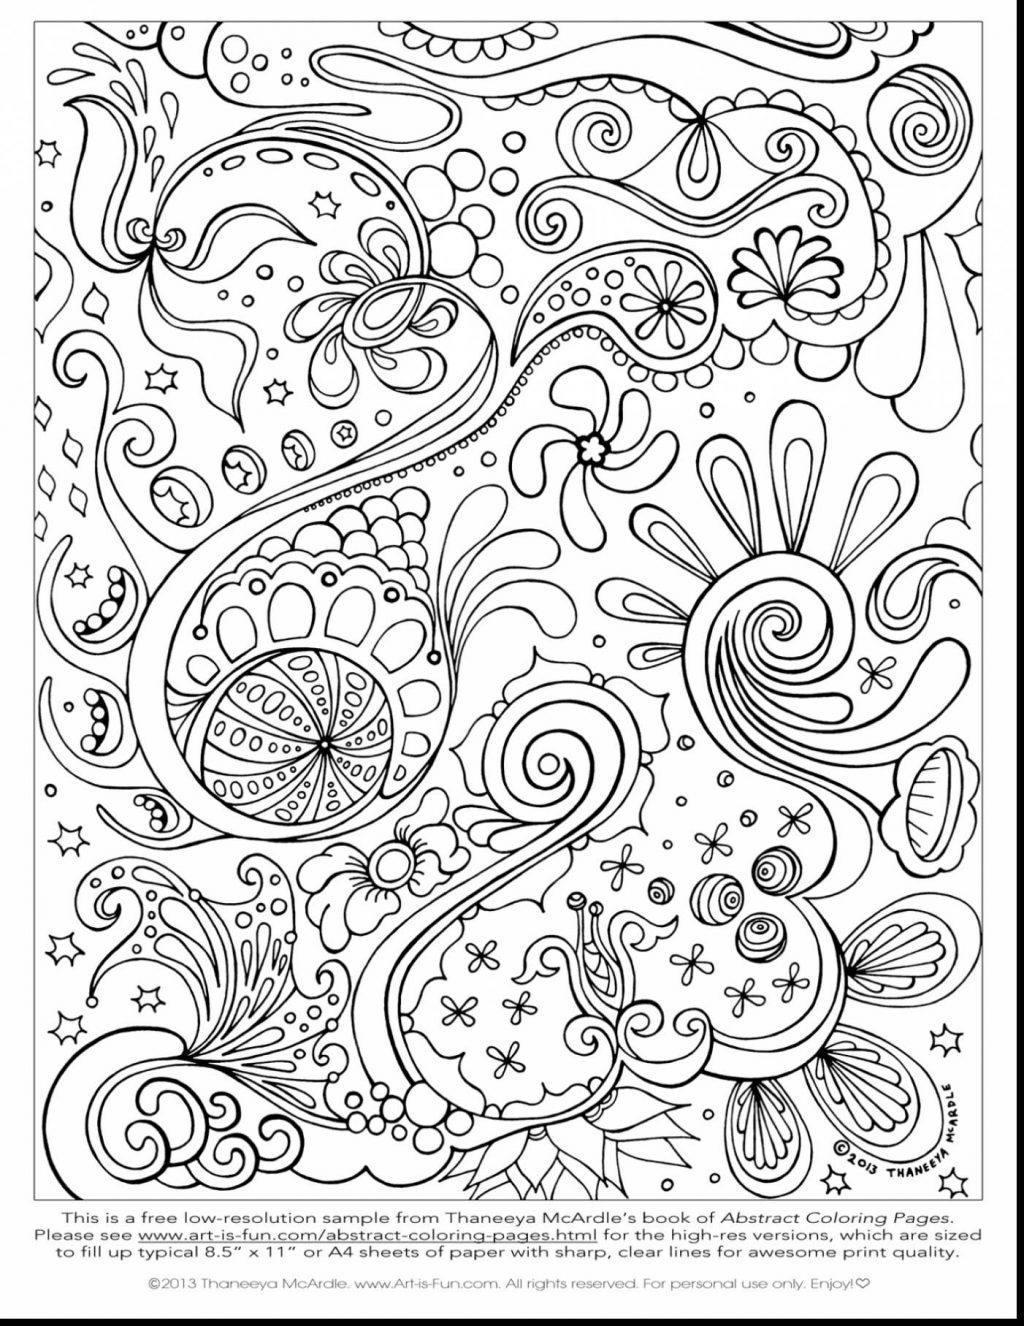 Coloring Page ~ Coloring Pages Stunninge Printable Books Pdf Grown - Free Printable Coloring Pages For Adults Pdf